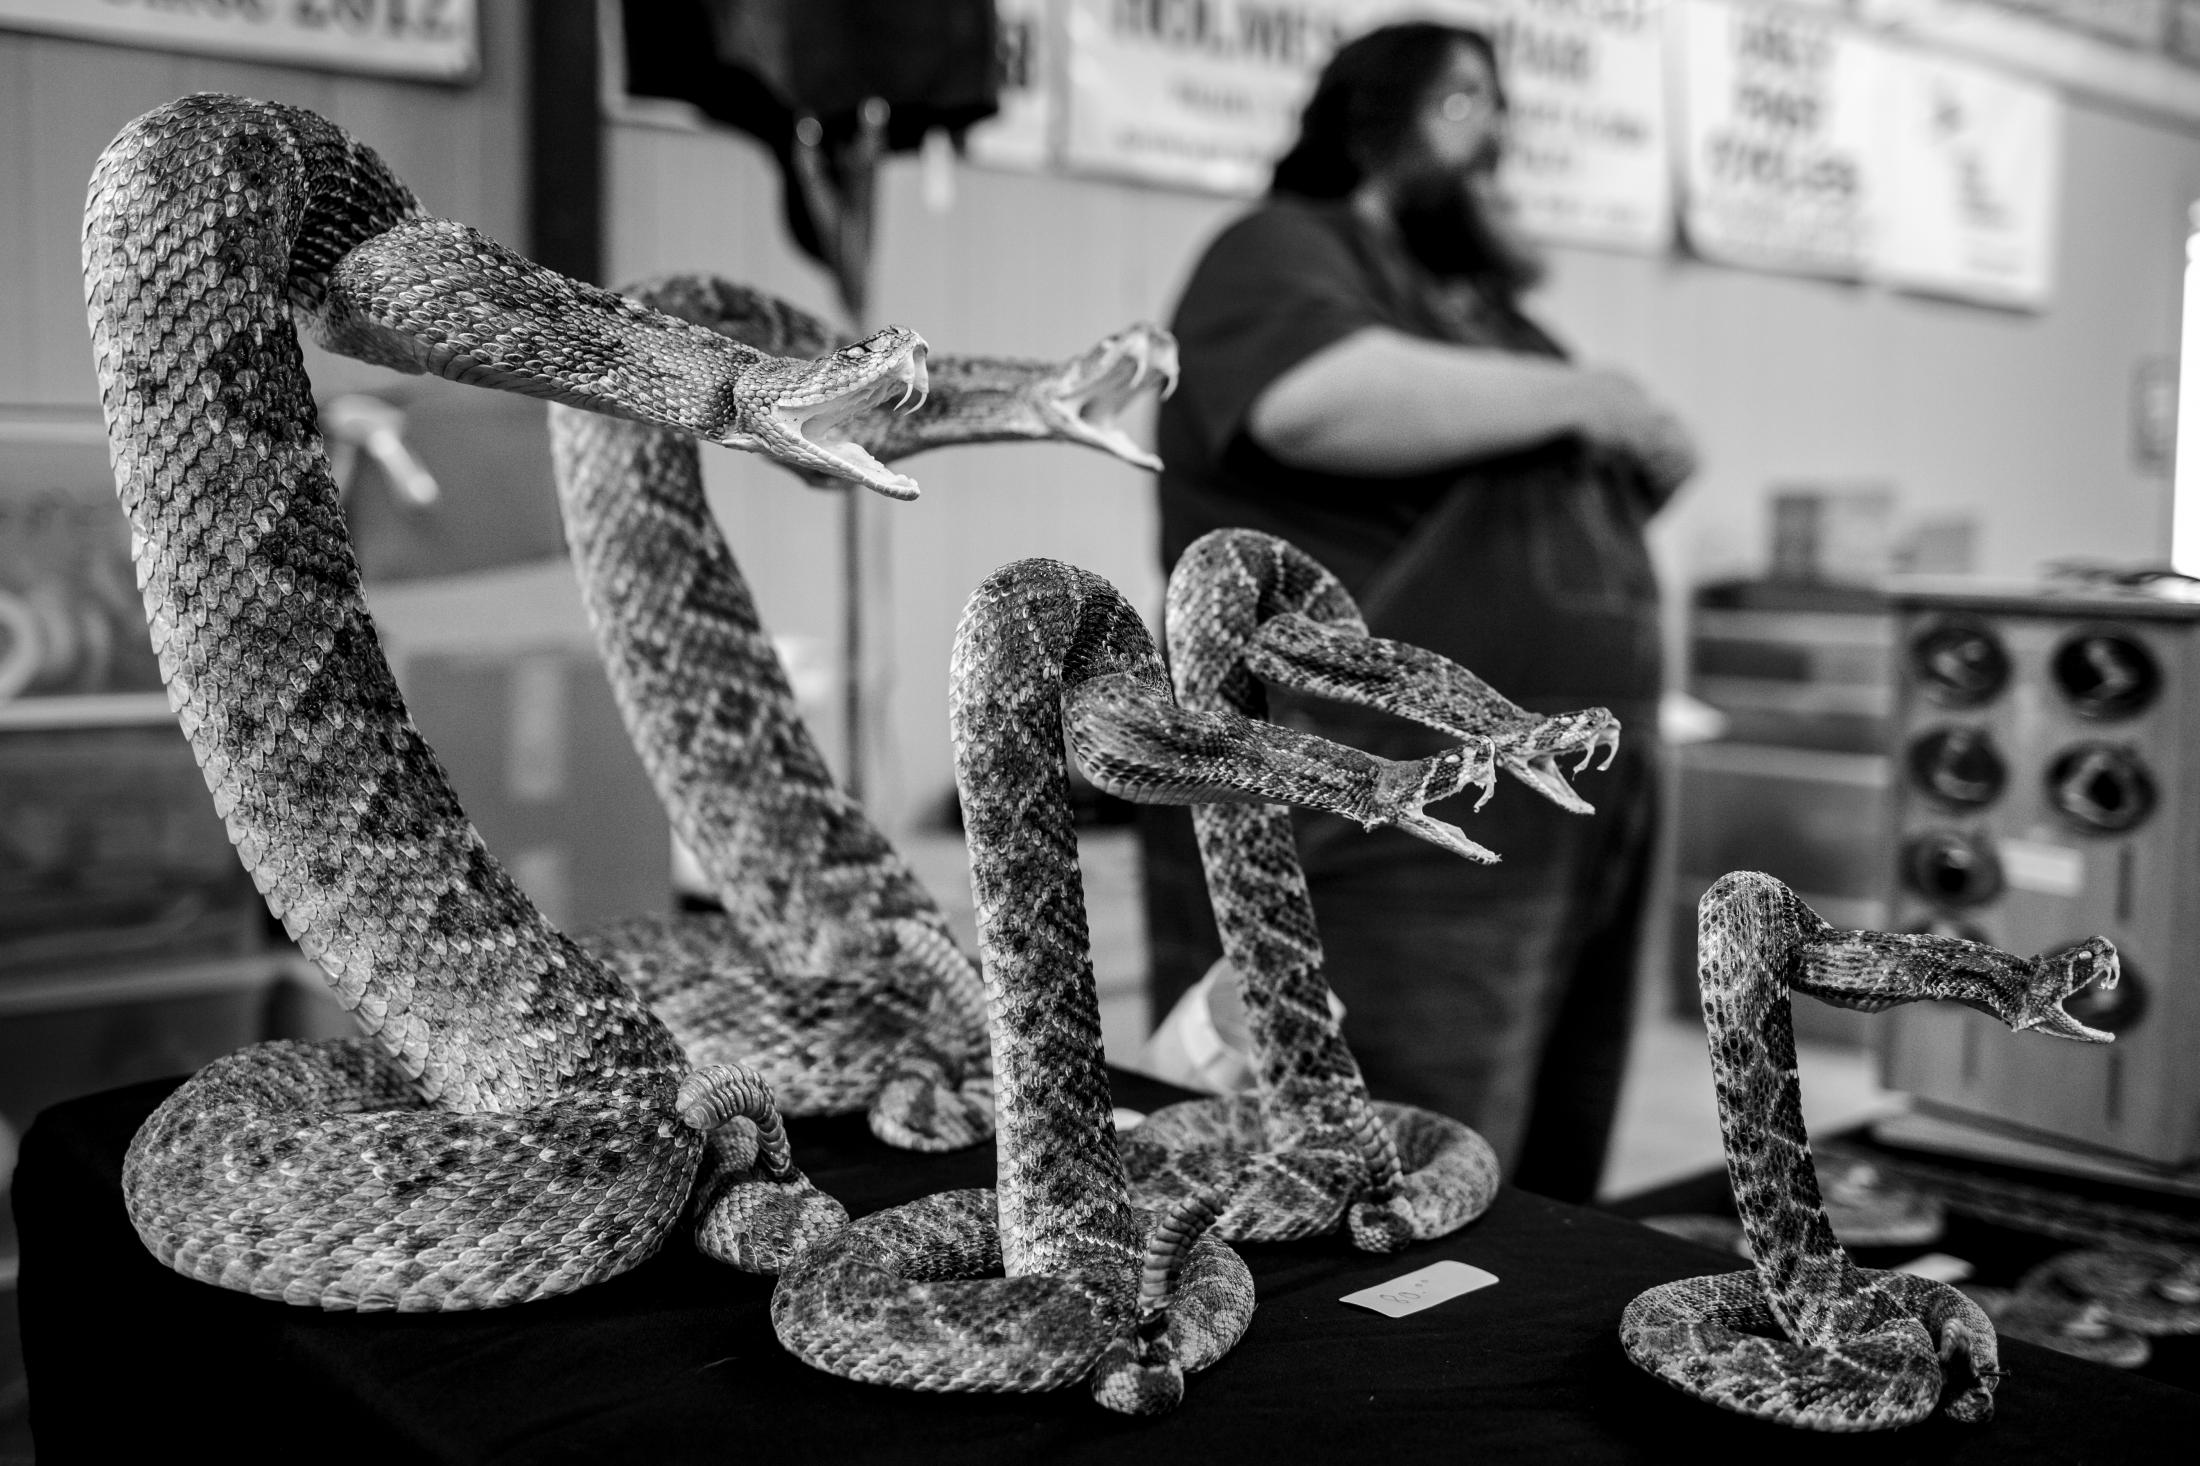 Stuffed snakes sit on a vendors table at the 2020 Rattlesnake Roundup in Sweetwater, Texas.